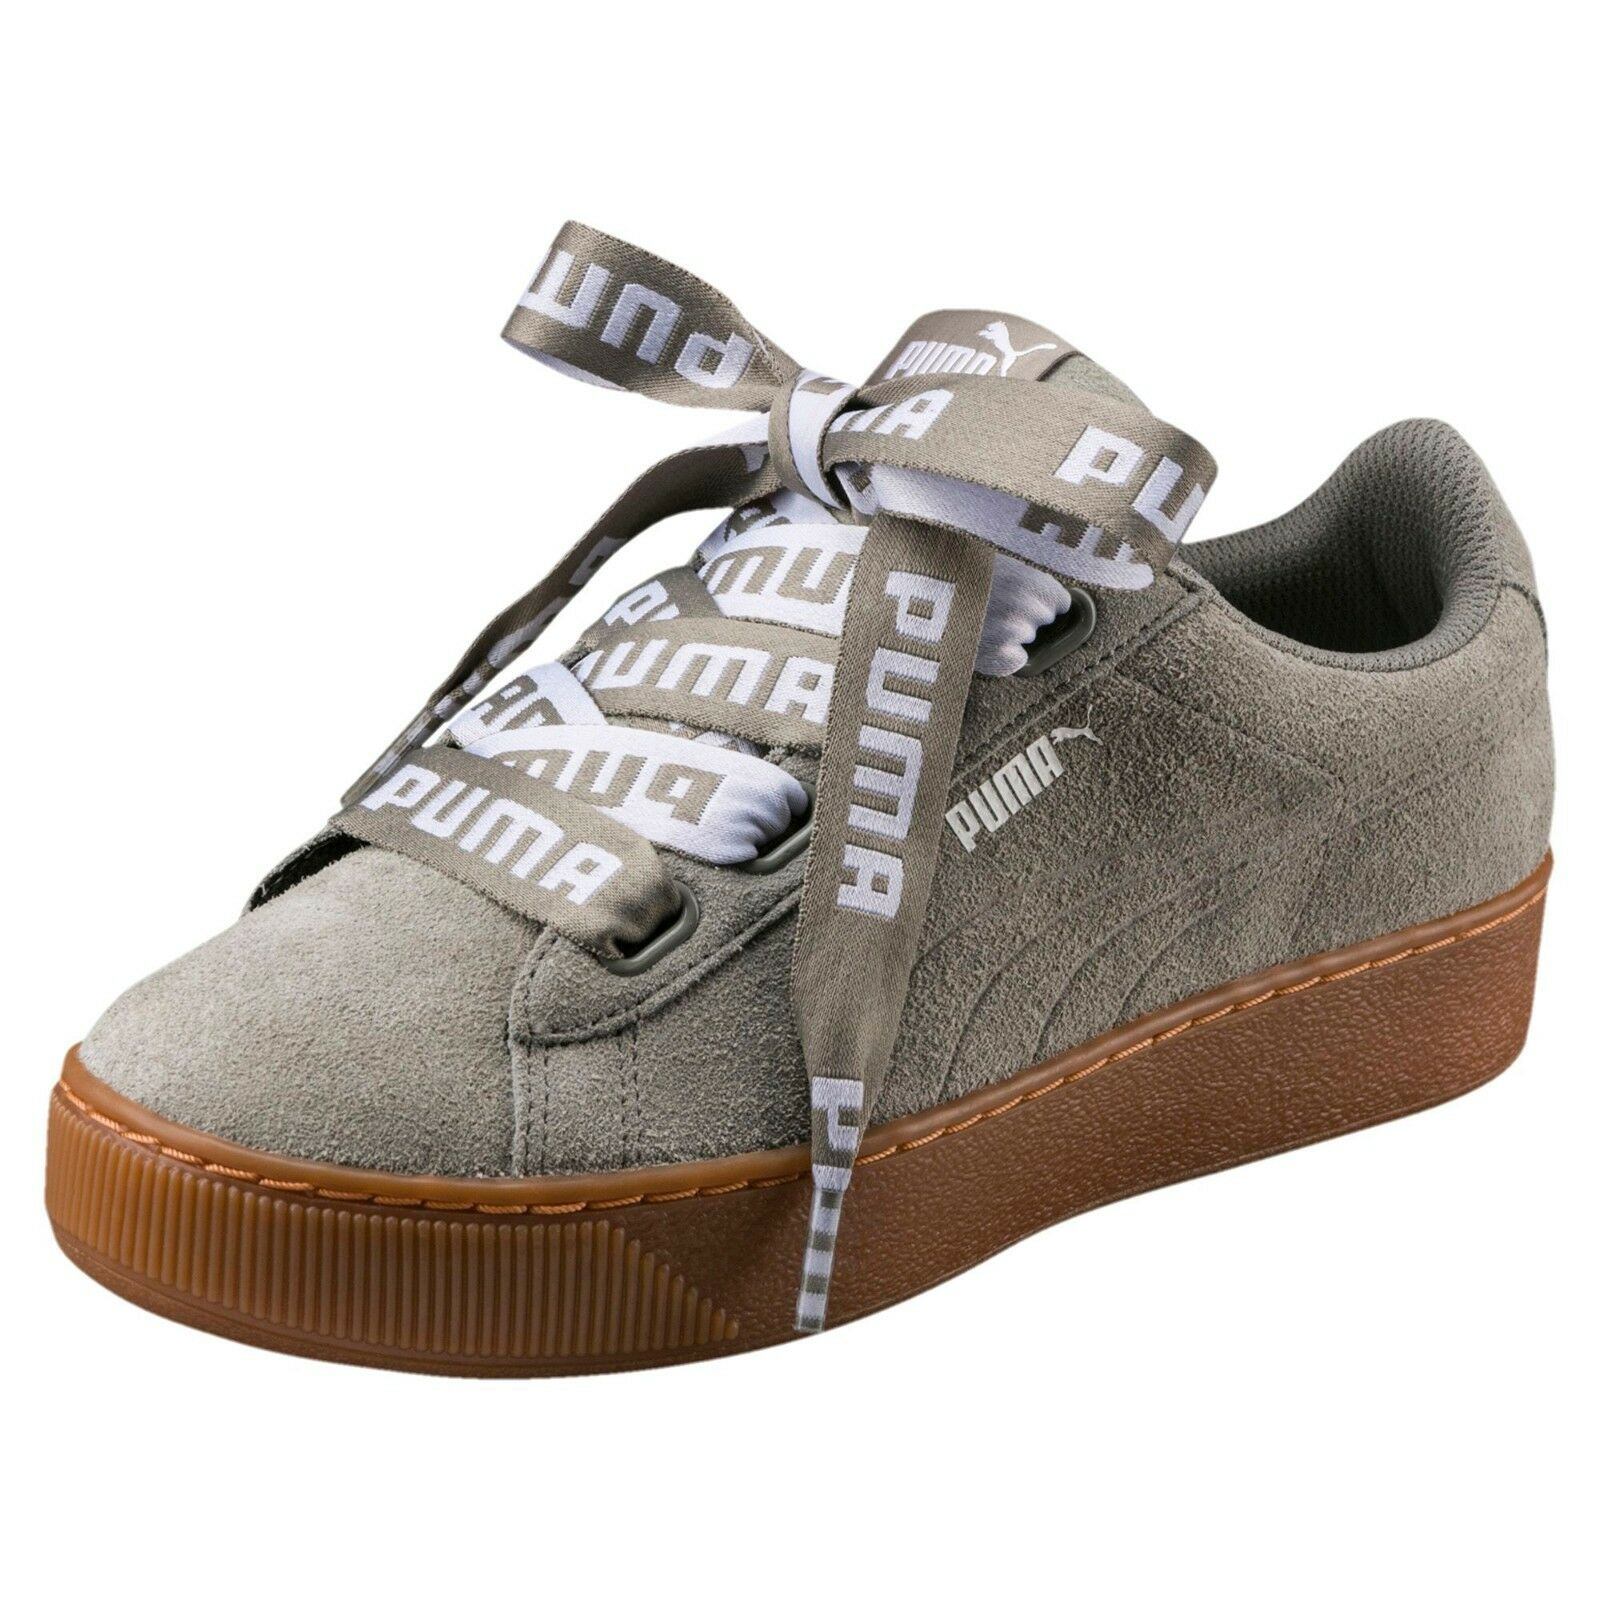 Puma - Vikky Platform Ribbon Bold - Rock Ridge - shoes women - 365314 03